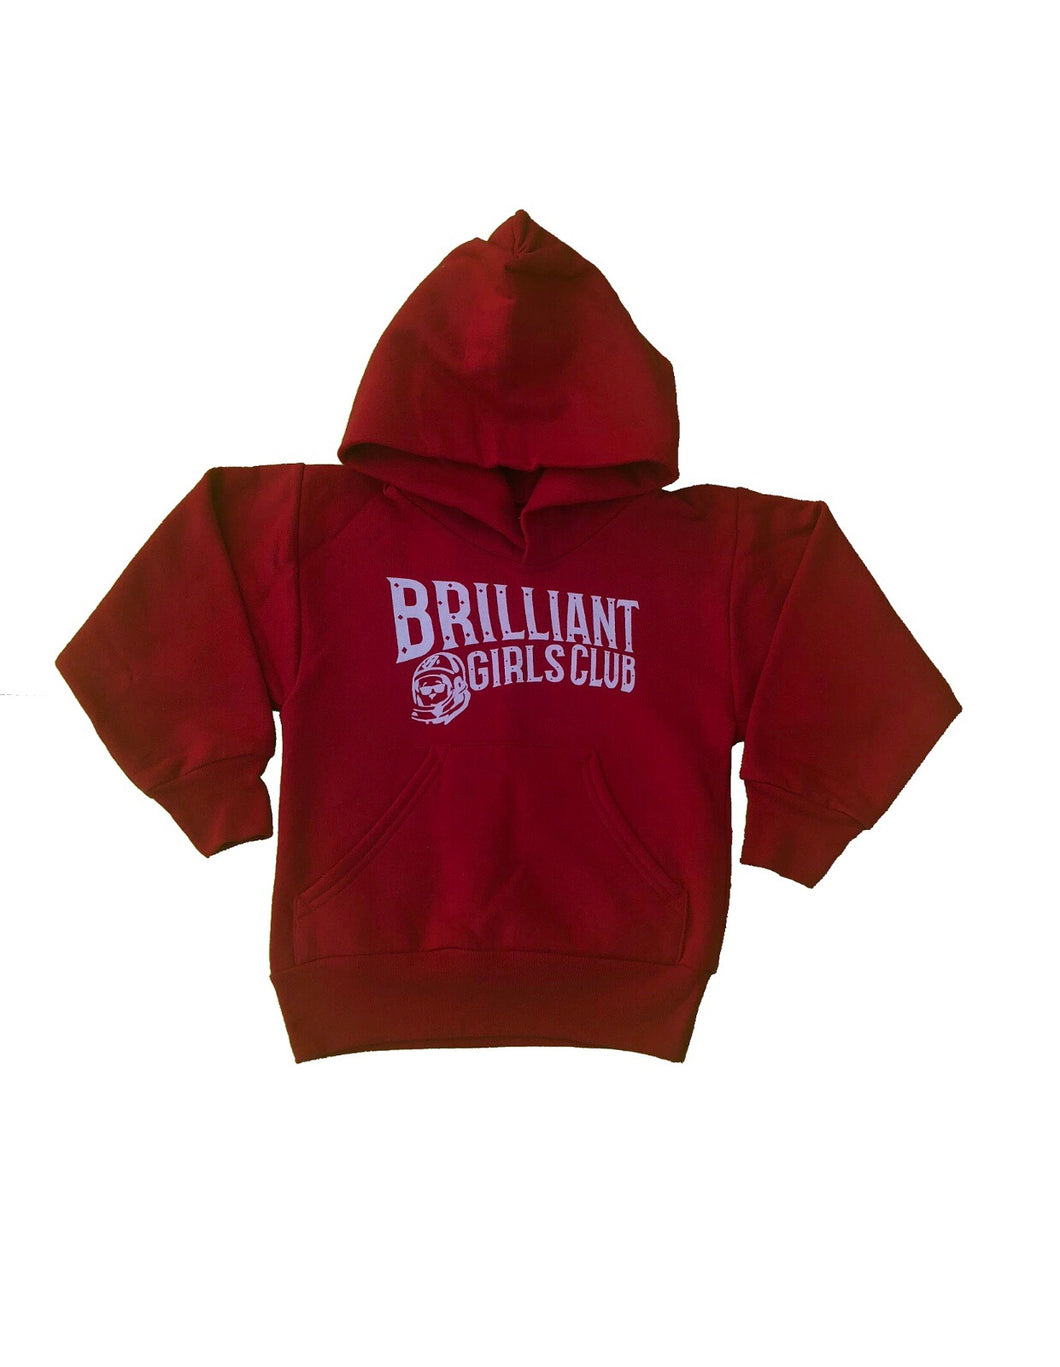 Brilliant Girls Club Hoodie (Red)